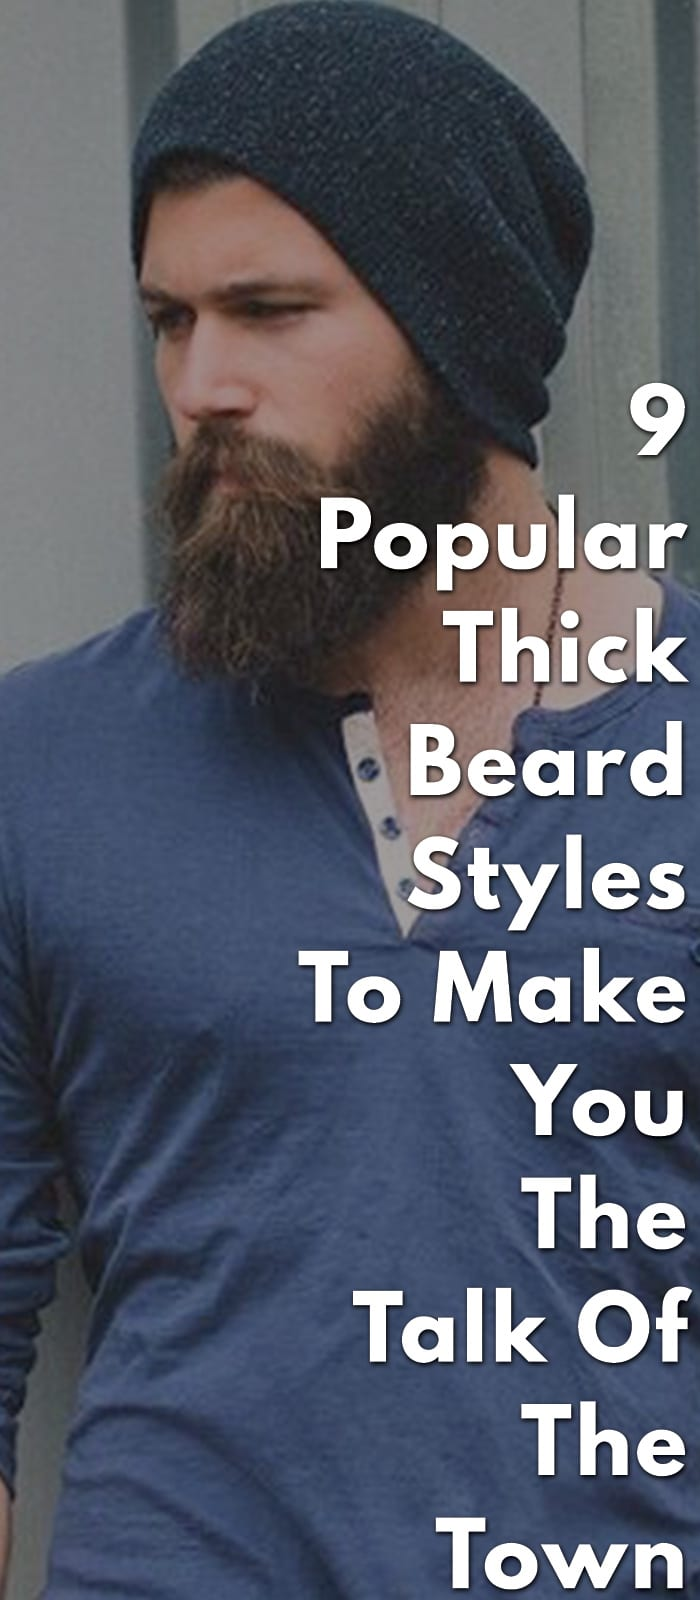 9-Popular-Thick-Beard-Styles-To-Make-You-The-Talk-Of-The-Town.